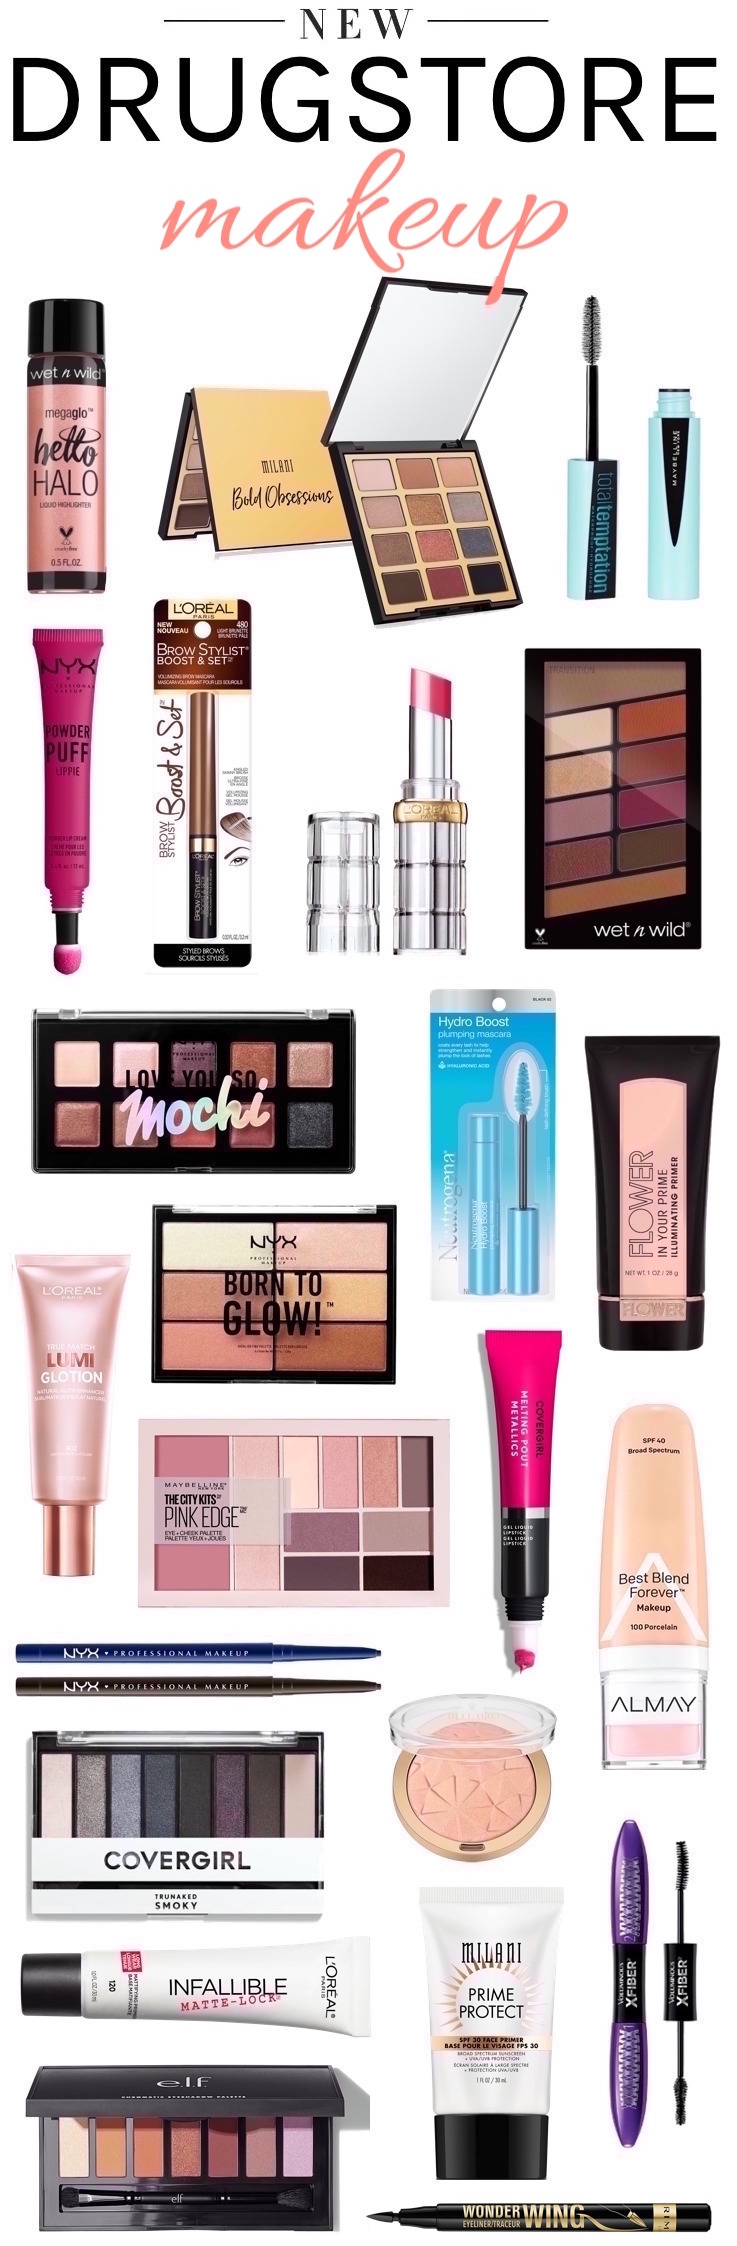 Want the scoop on the new drugstore makeup to hit the shelves? Here are 32 brand new beauty products to put on your radar this month! So many goodies!